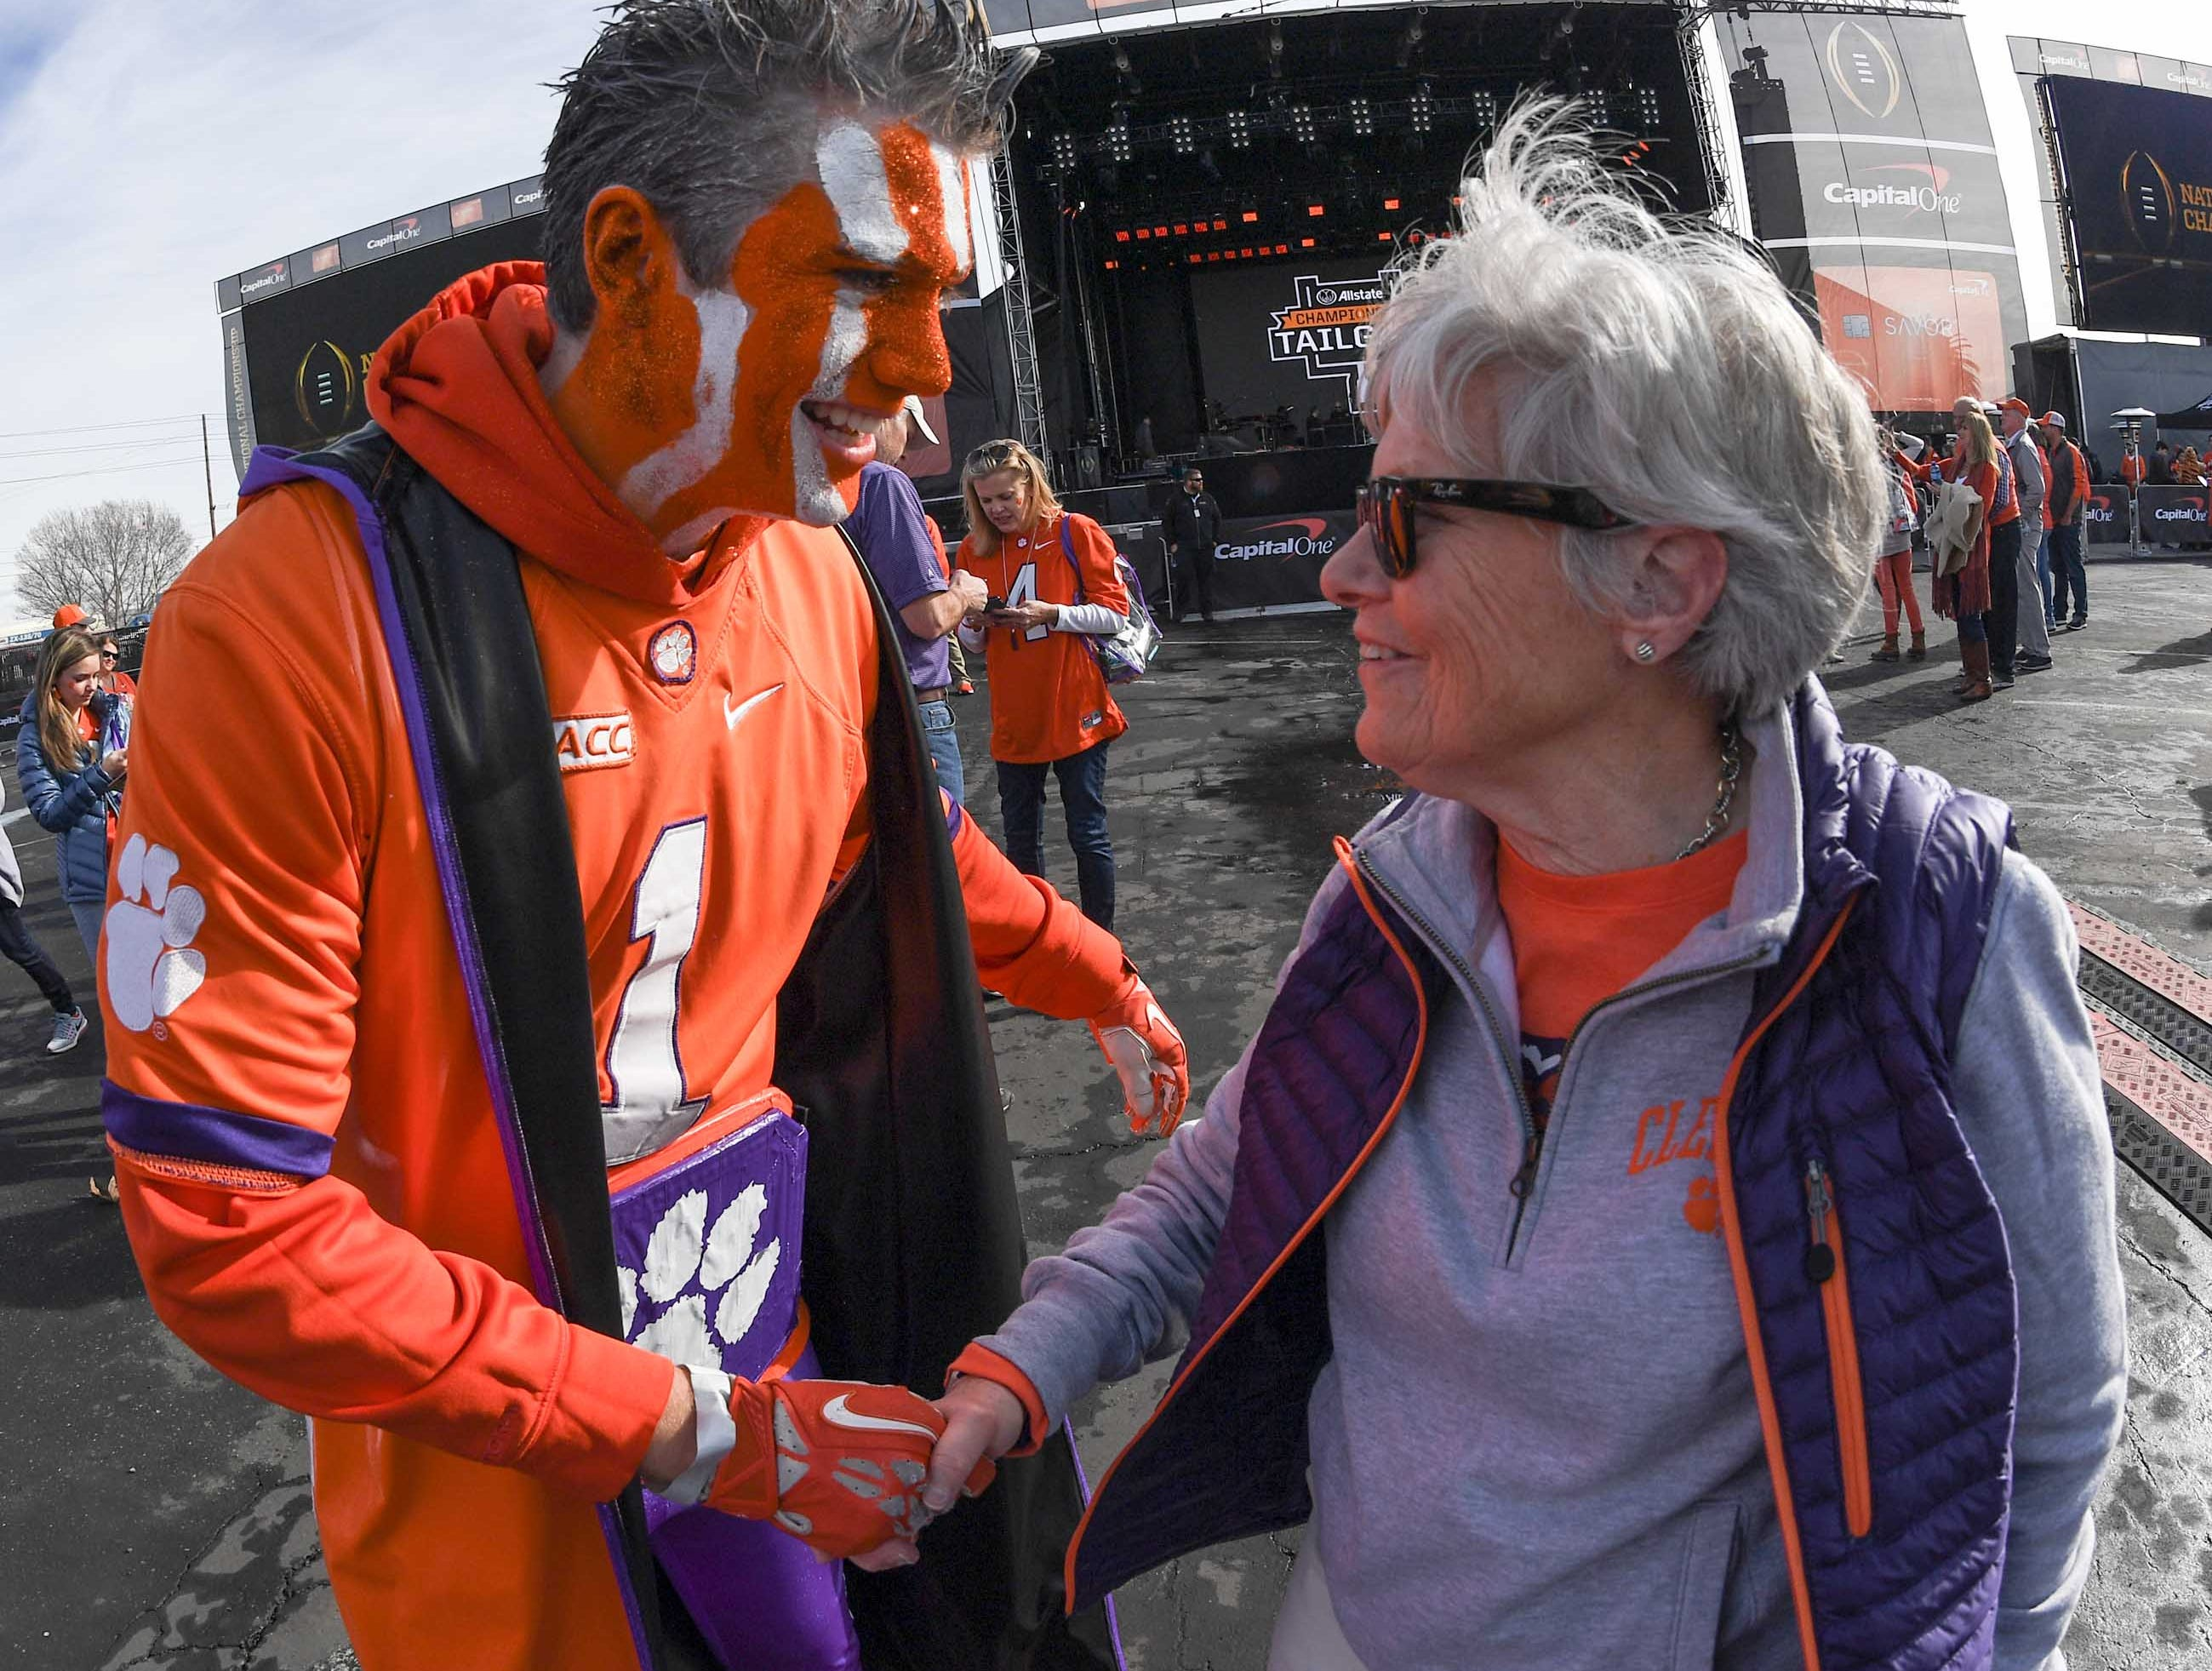 Clemson fan Peter Rowan, left, calling himself MVPeter, meets Betty Bagley at the College Football Championship Playoff Tailgate outside Levi's Stadium in Santa Clara, California Monday, January 7, 2019.